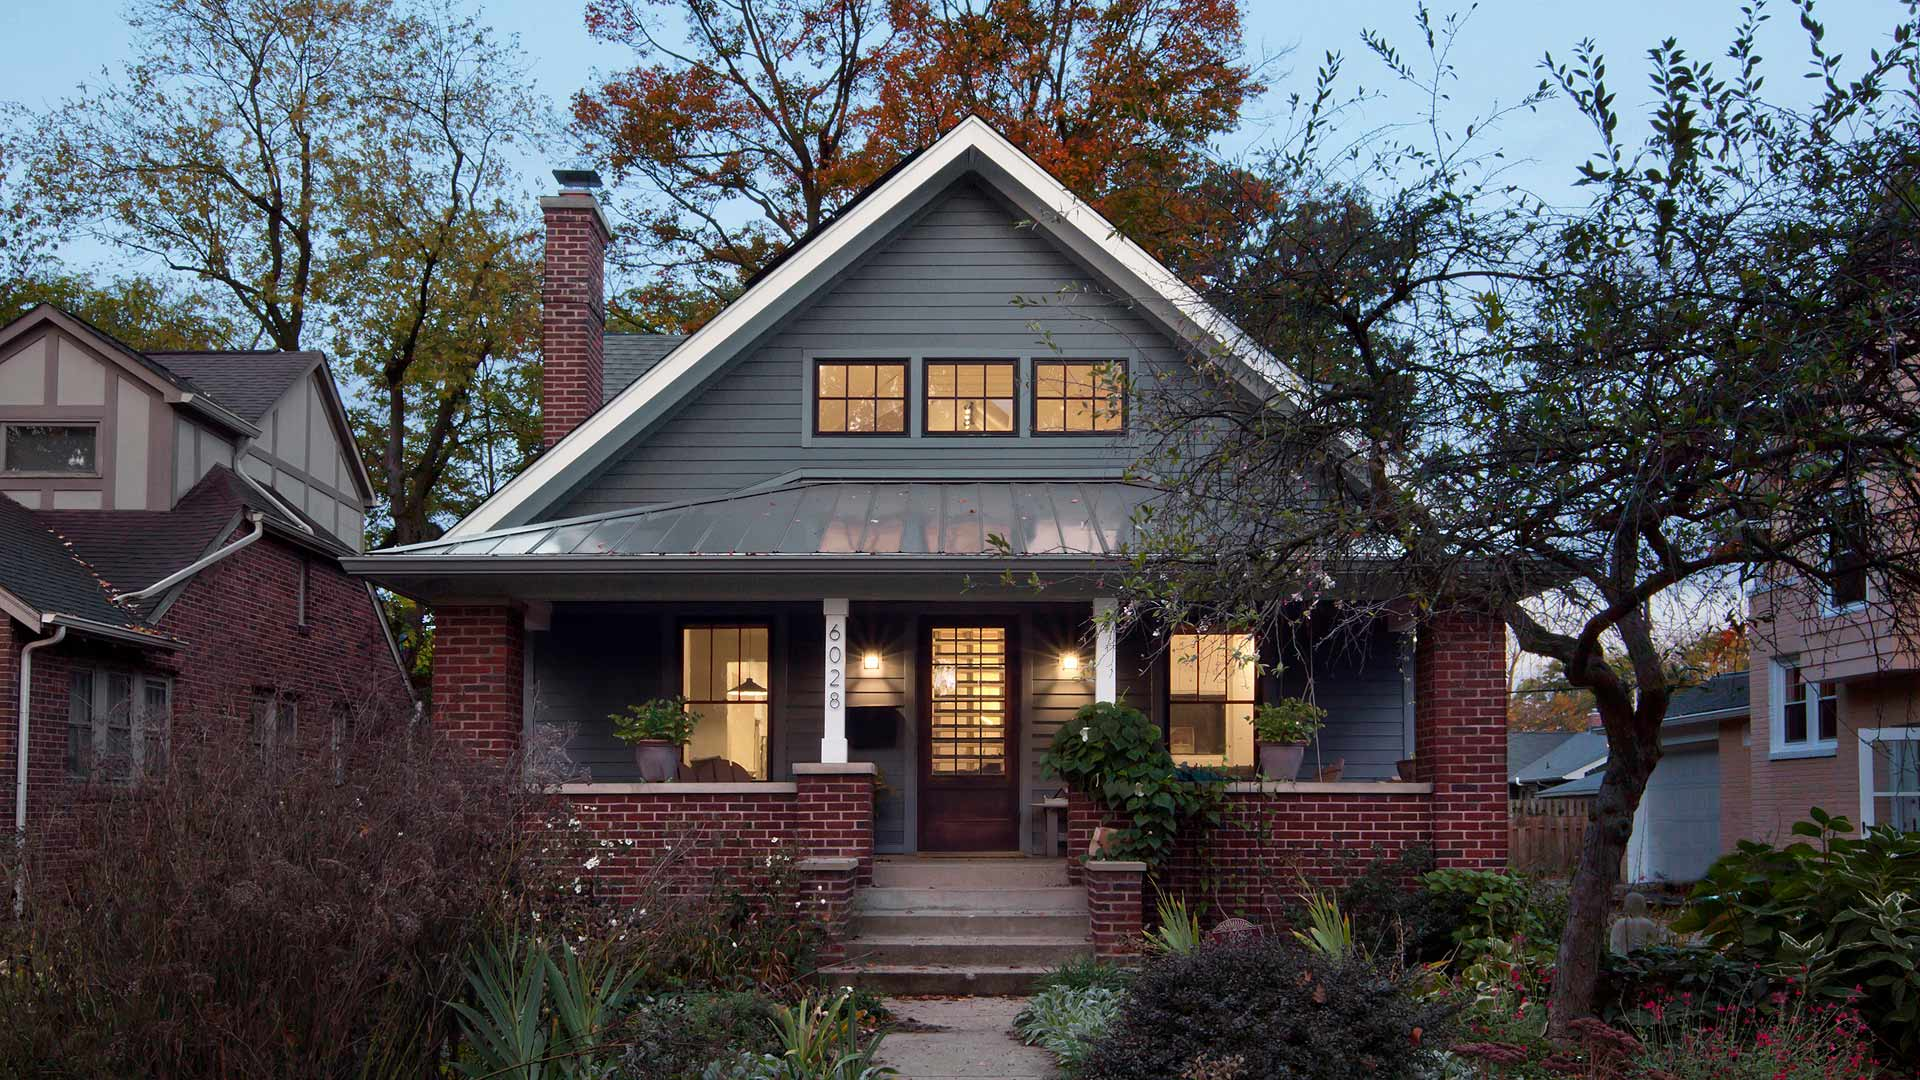 This newly reconstructed Modern Craftsman-style home maintains the scale and character of the streetscape while taking its design + detail game up a notch in this newly reconstructed Broad Ripple Modern Craftsman Dwelling on Carrollton Avenue - Indianapolis, Indiana, Christopher Short, Architect, HAUS Architecture + WERK | Building Modern